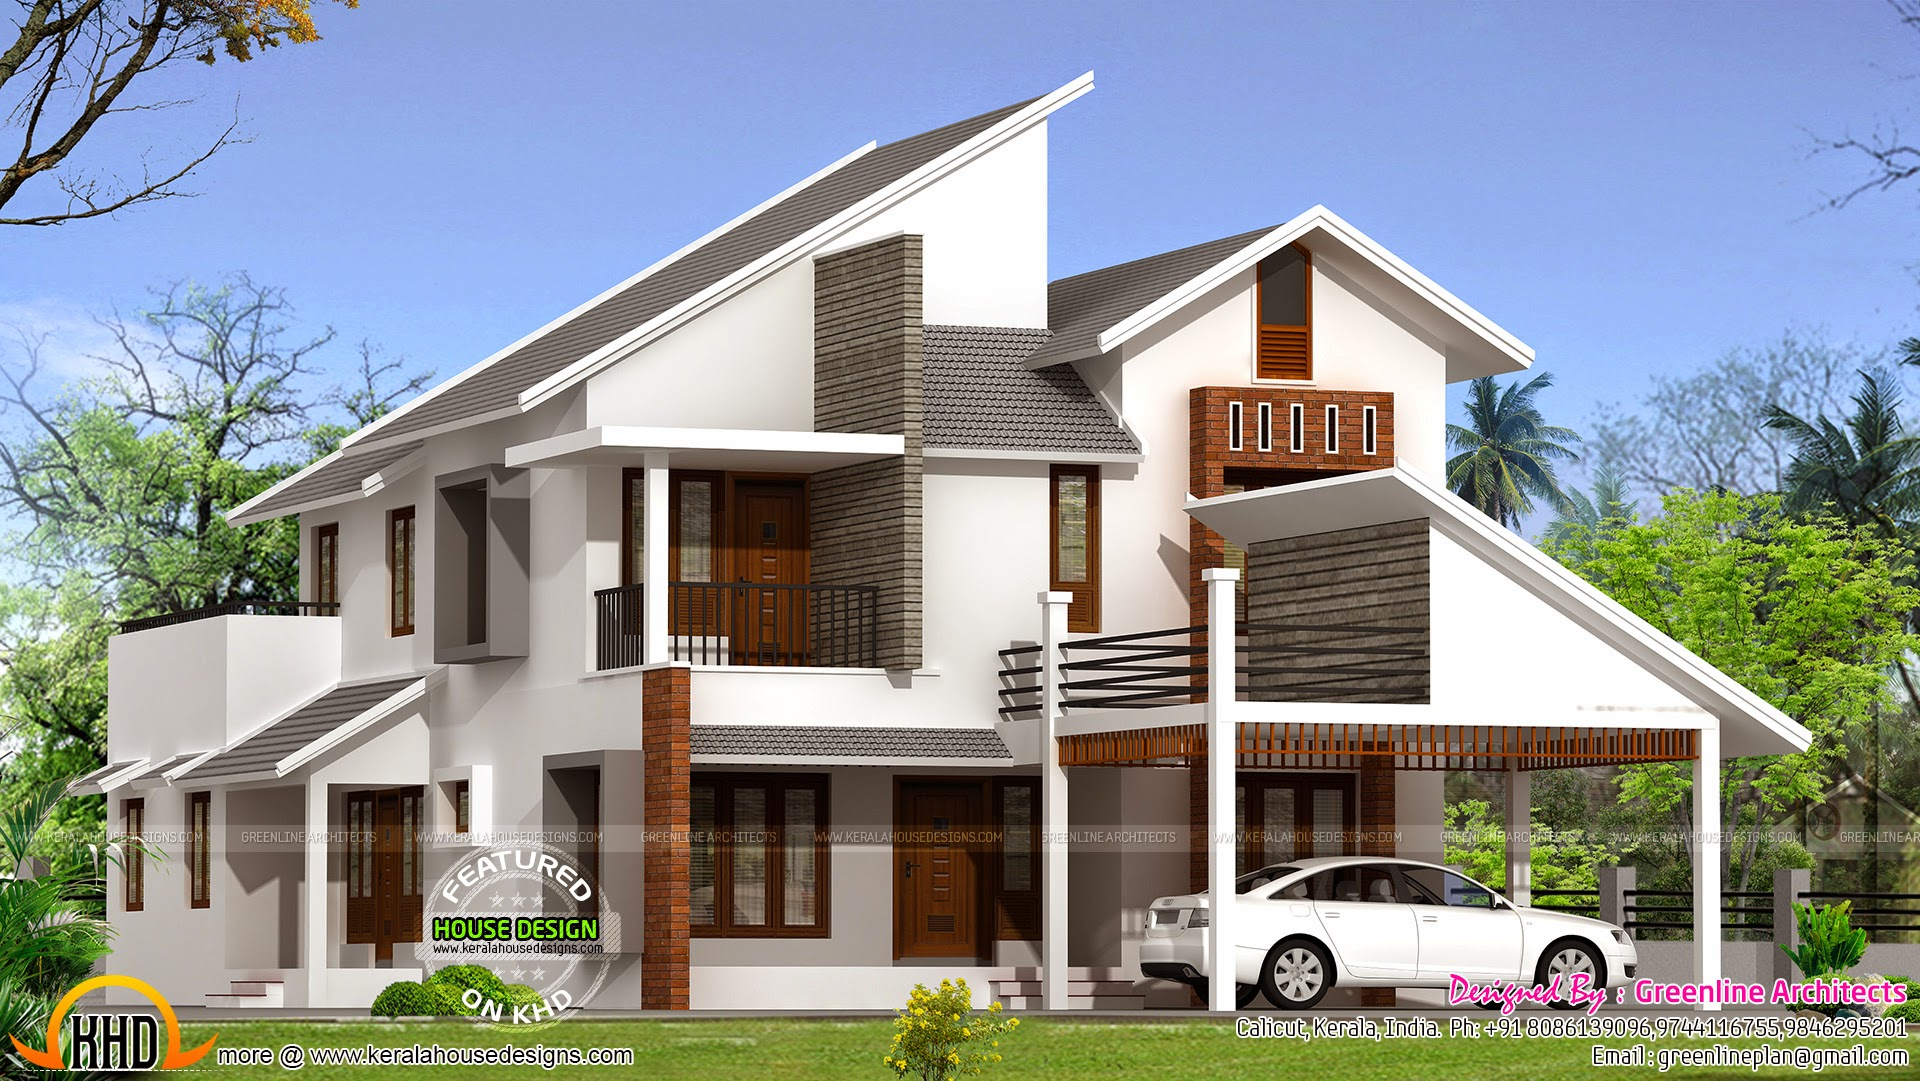 New modern house plan kerala home design and floor plans for Modern kerala style house plans with photos